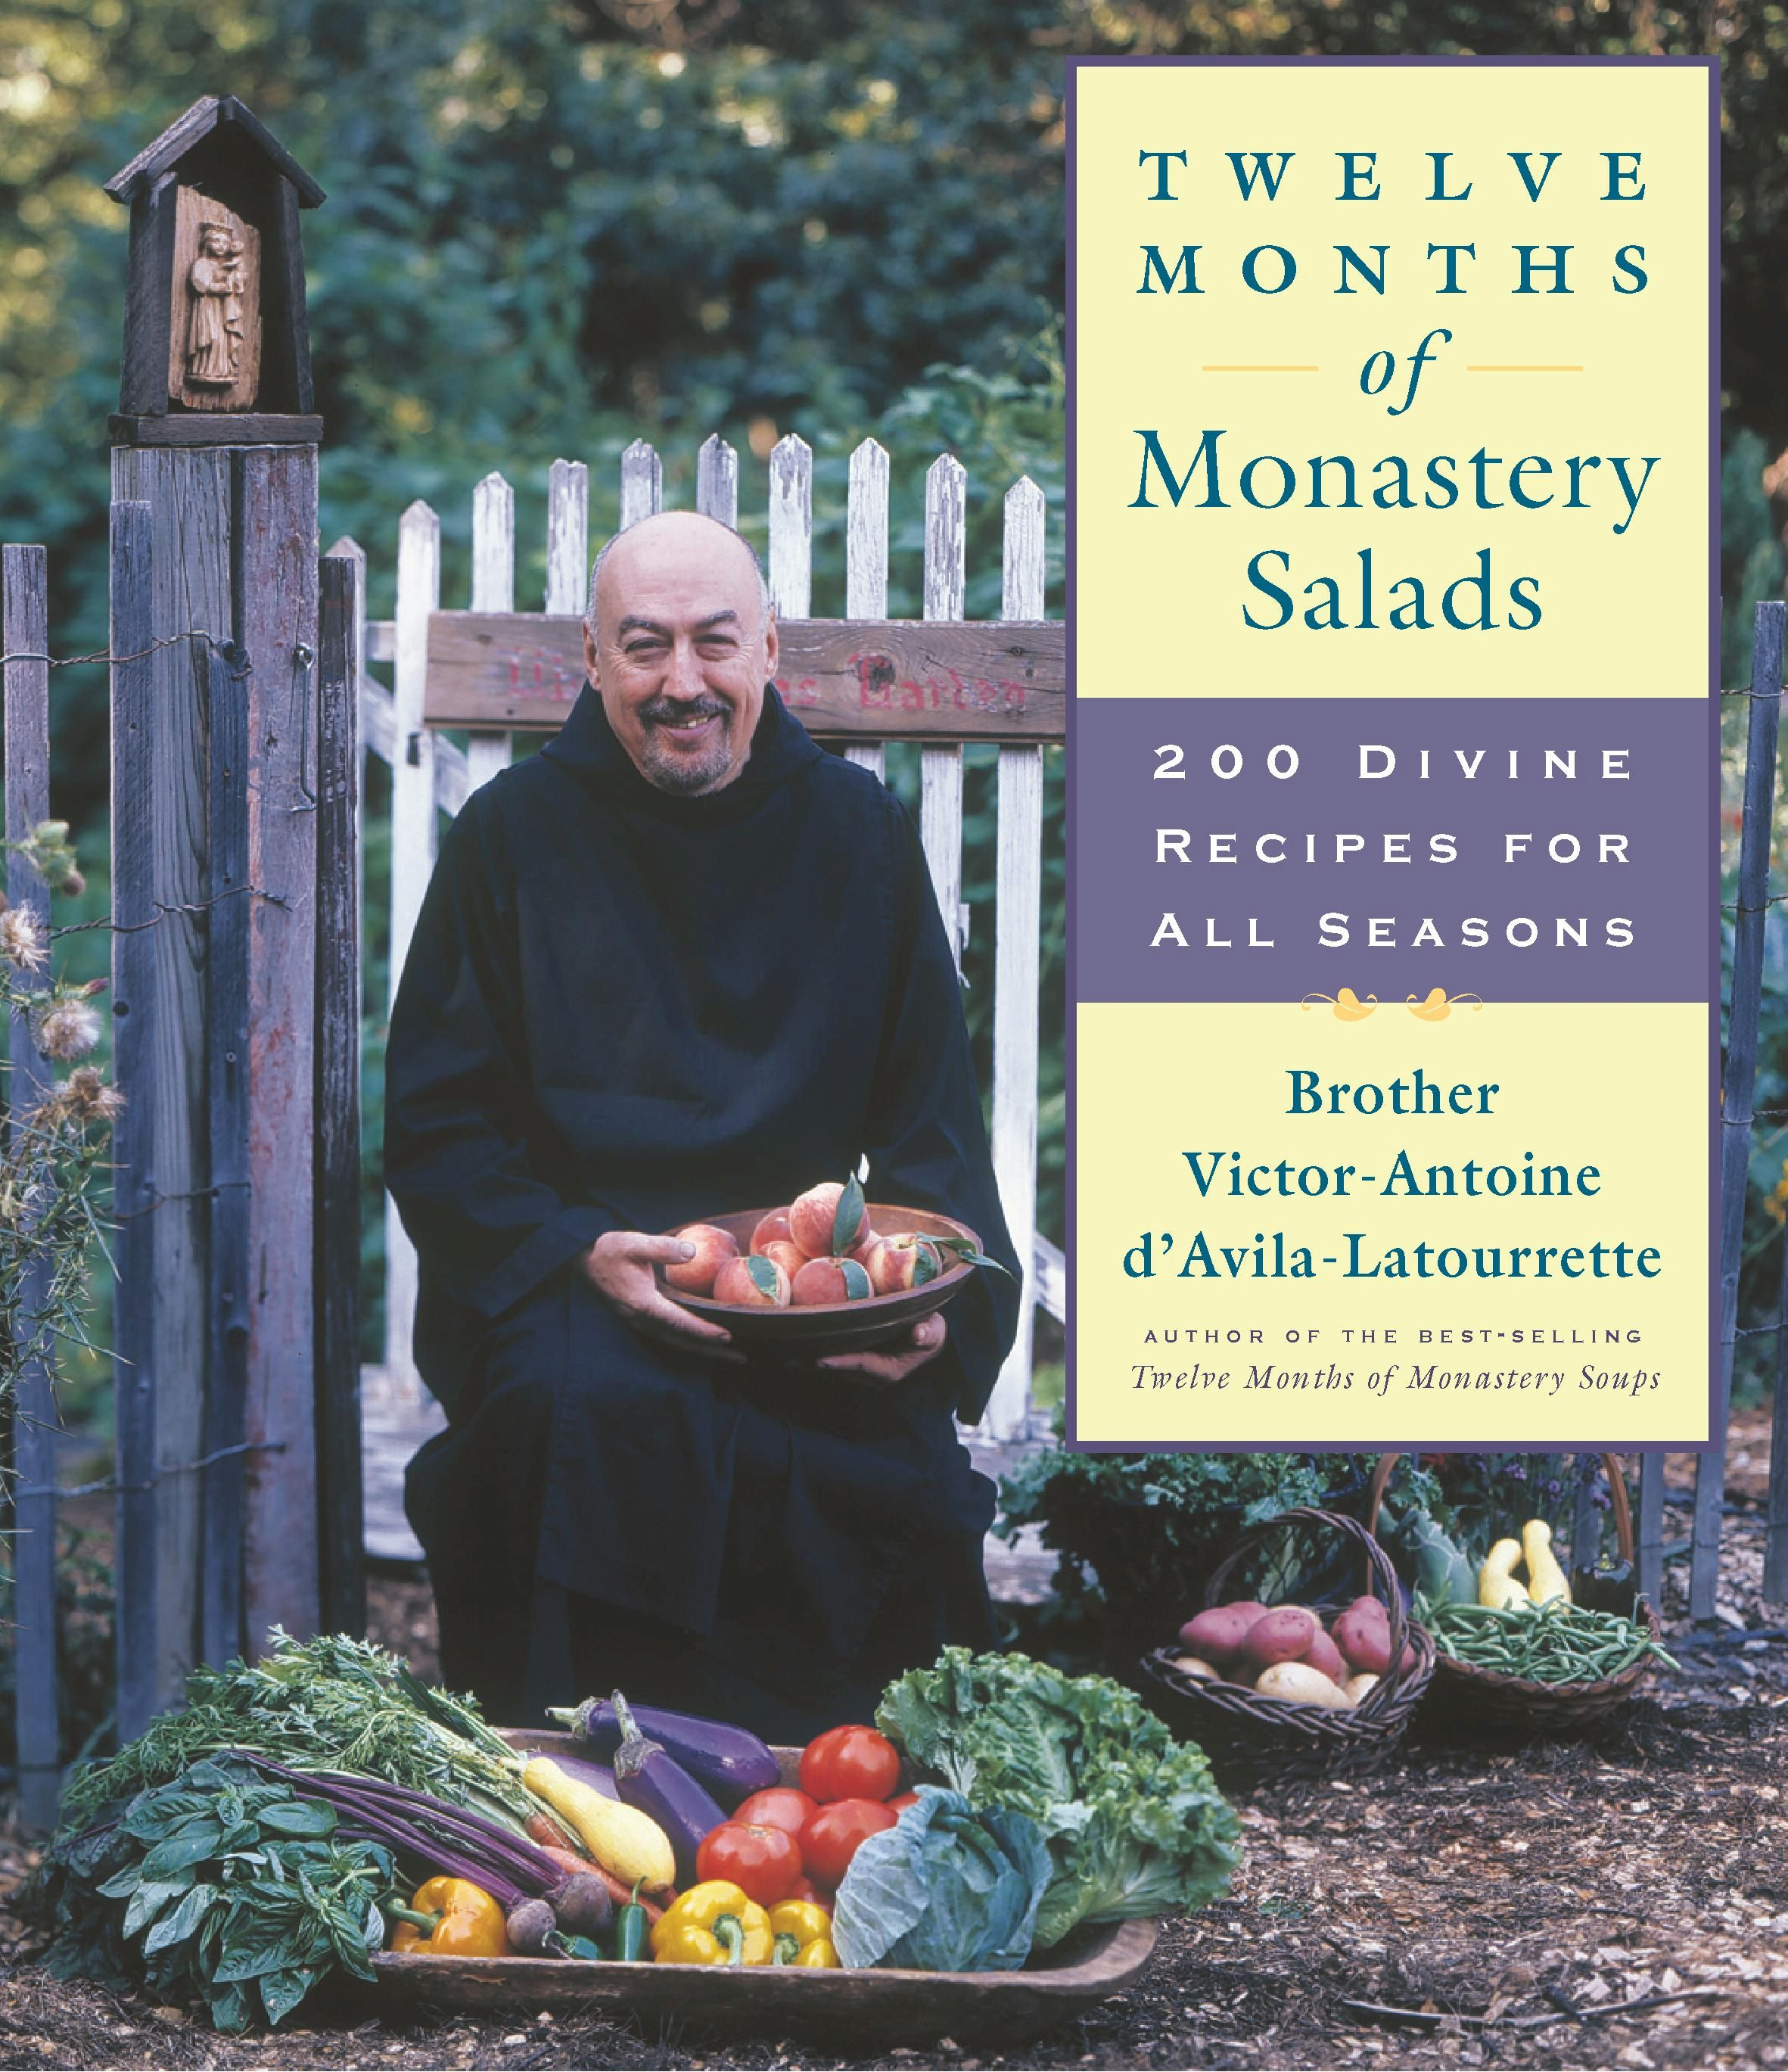 Twelve Months of Monastery Salads By: Brother Victor Antoine d'Avila-Latourrette